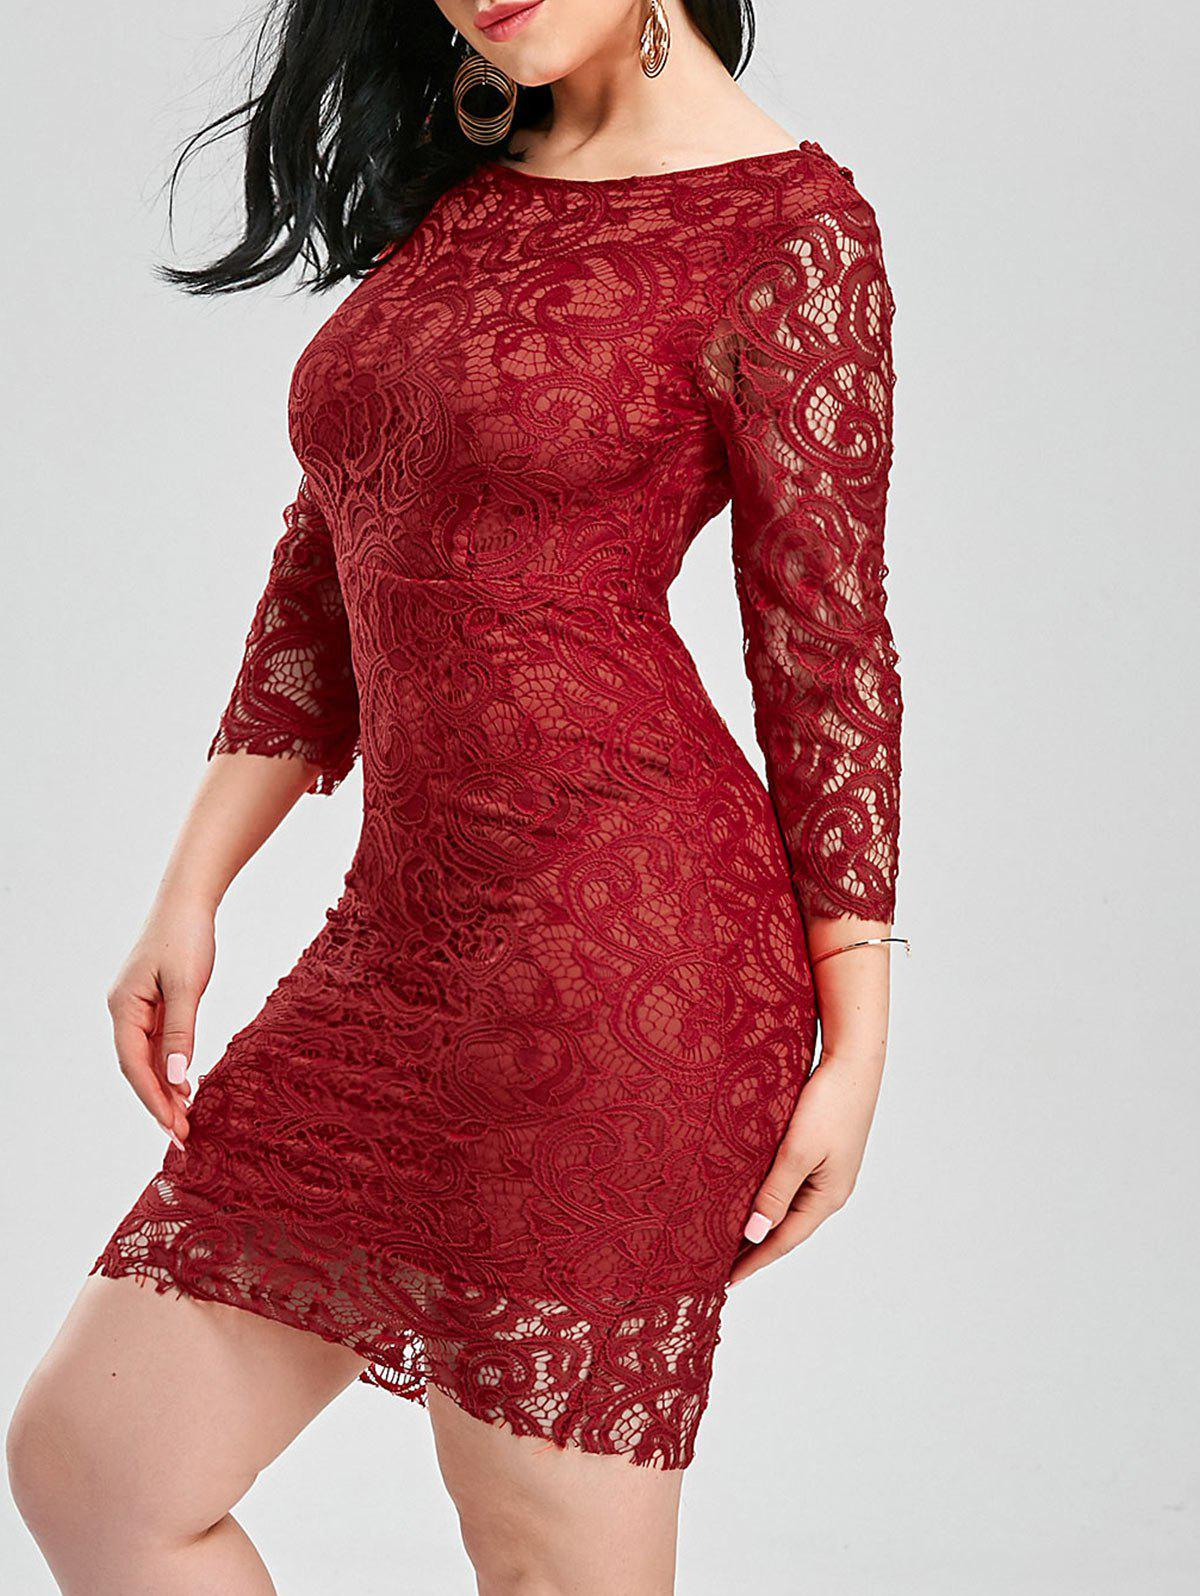 Slash Collar Backless Cut Out Lace Dress - RED M